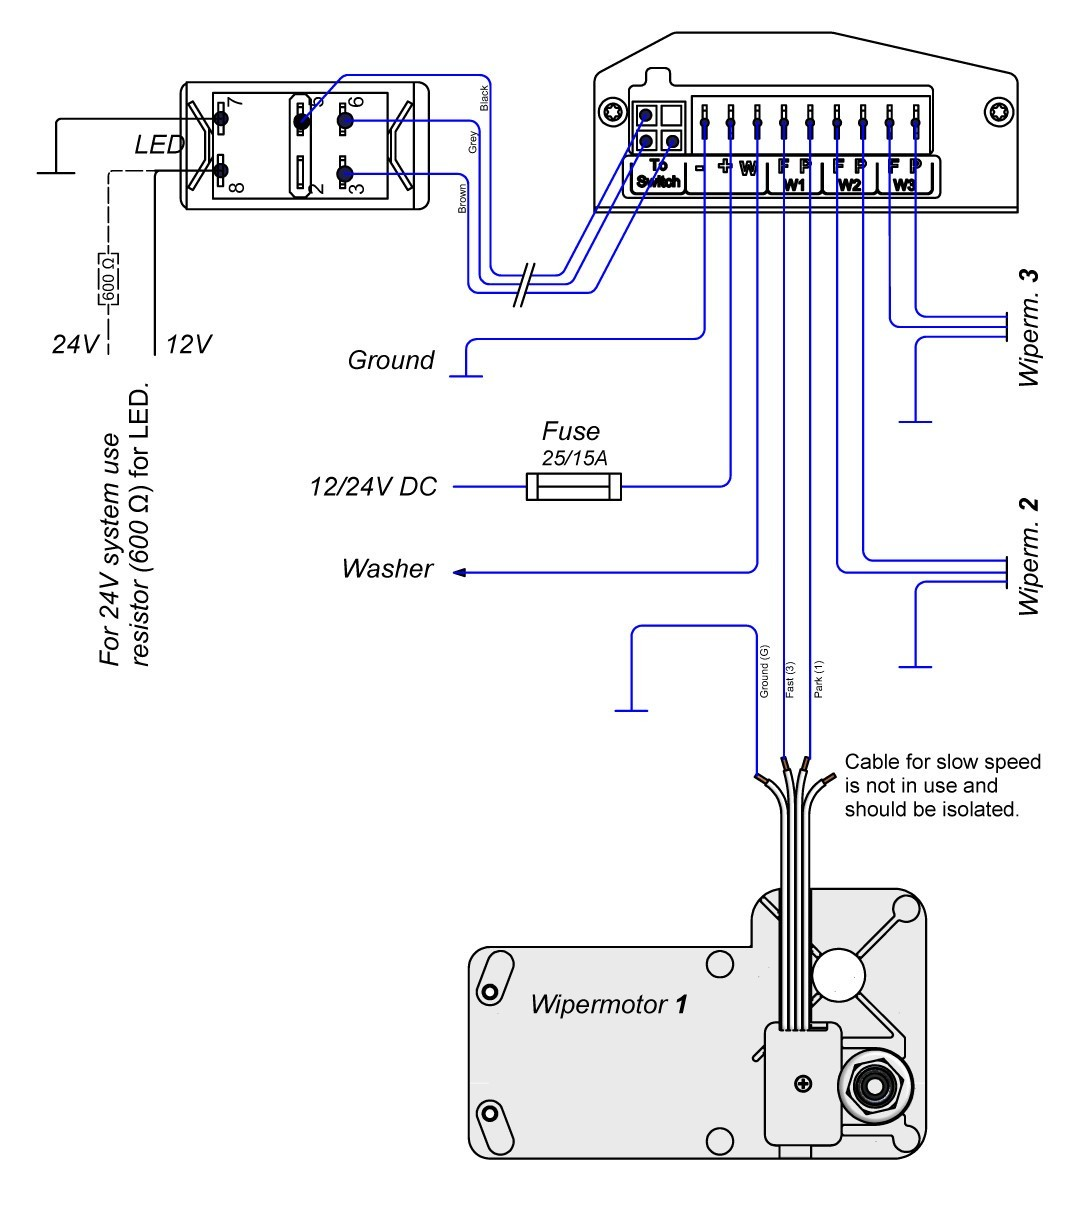 wiper wiring diagram 12 10 kenmo lp de \u2022cj5 wiper motor wiring diagram wiring schematic diagram rh 40 twizer co wiper motor wiring diagram toyota wiper wiring diagram pdf